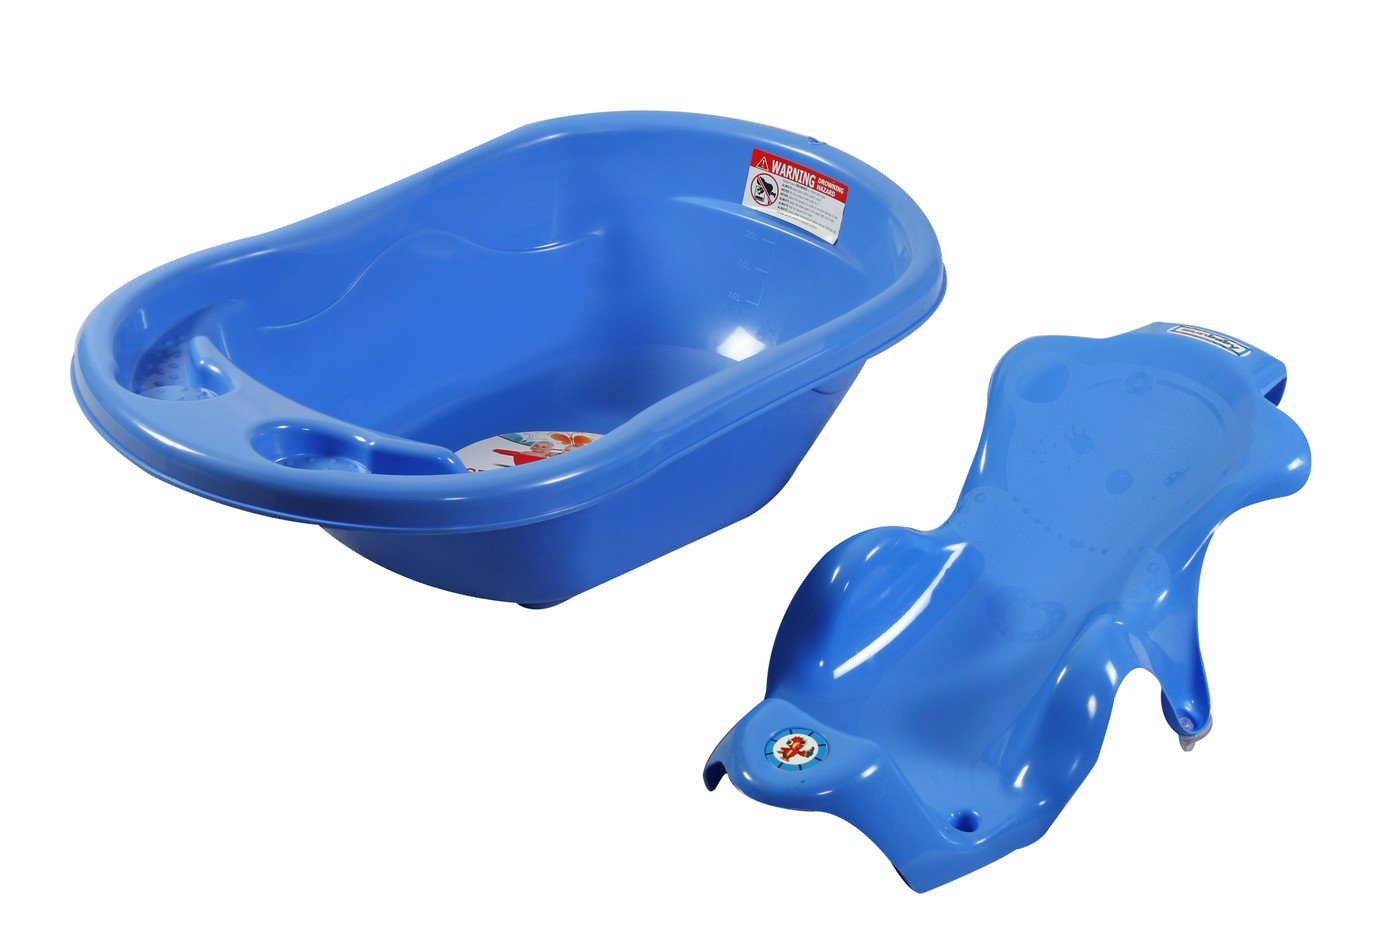 Buy Sunbaby Bath Tub with Bath Sling Combo (Blue) Online at Low ...